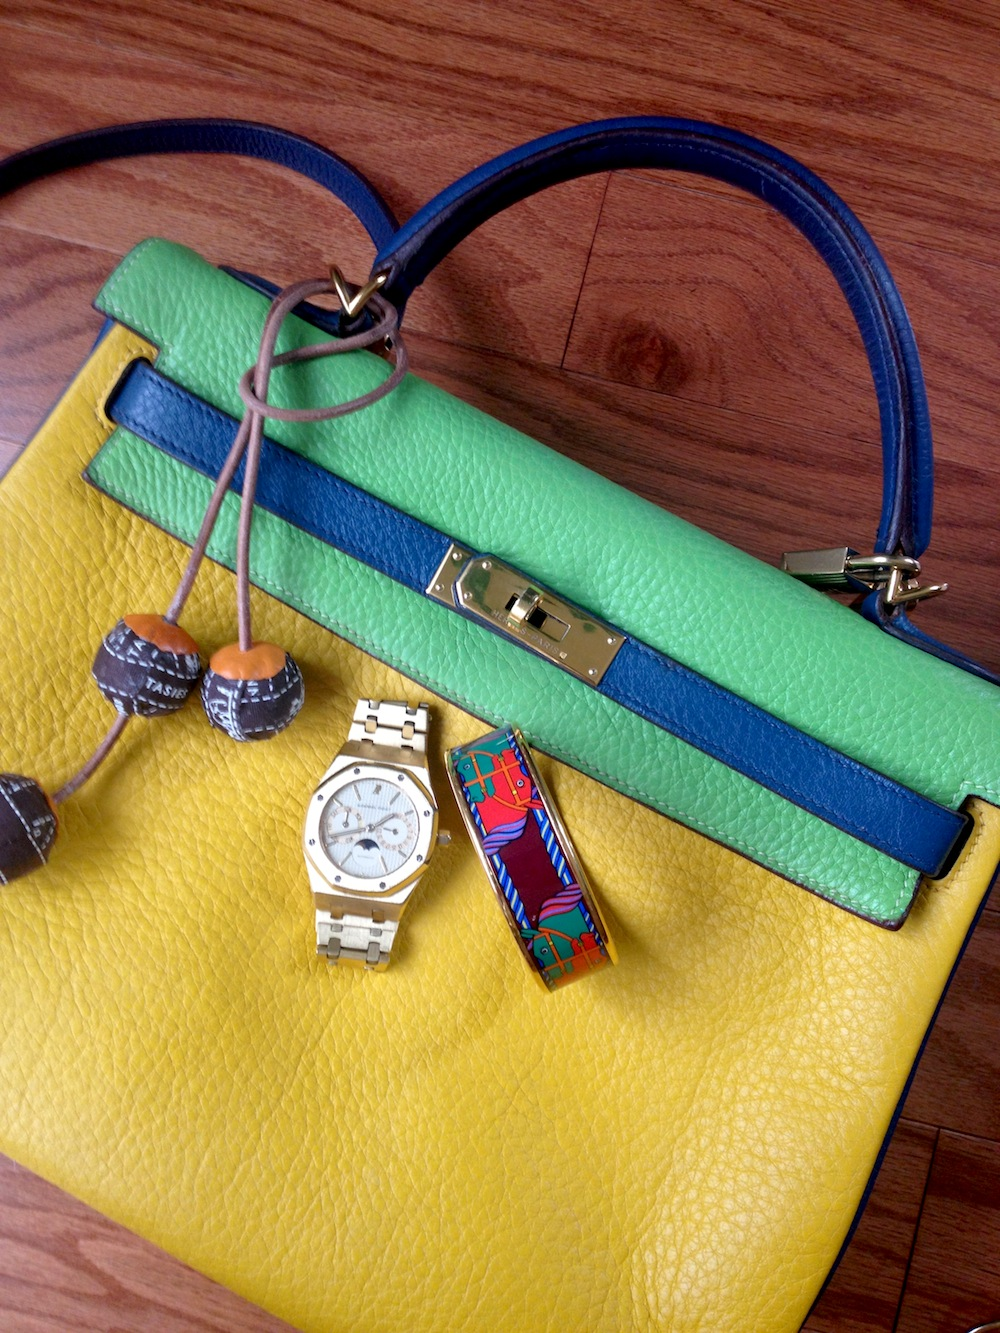 TriColor Kelly bag in Jaune, Vert Cru and Blue Thalassa.